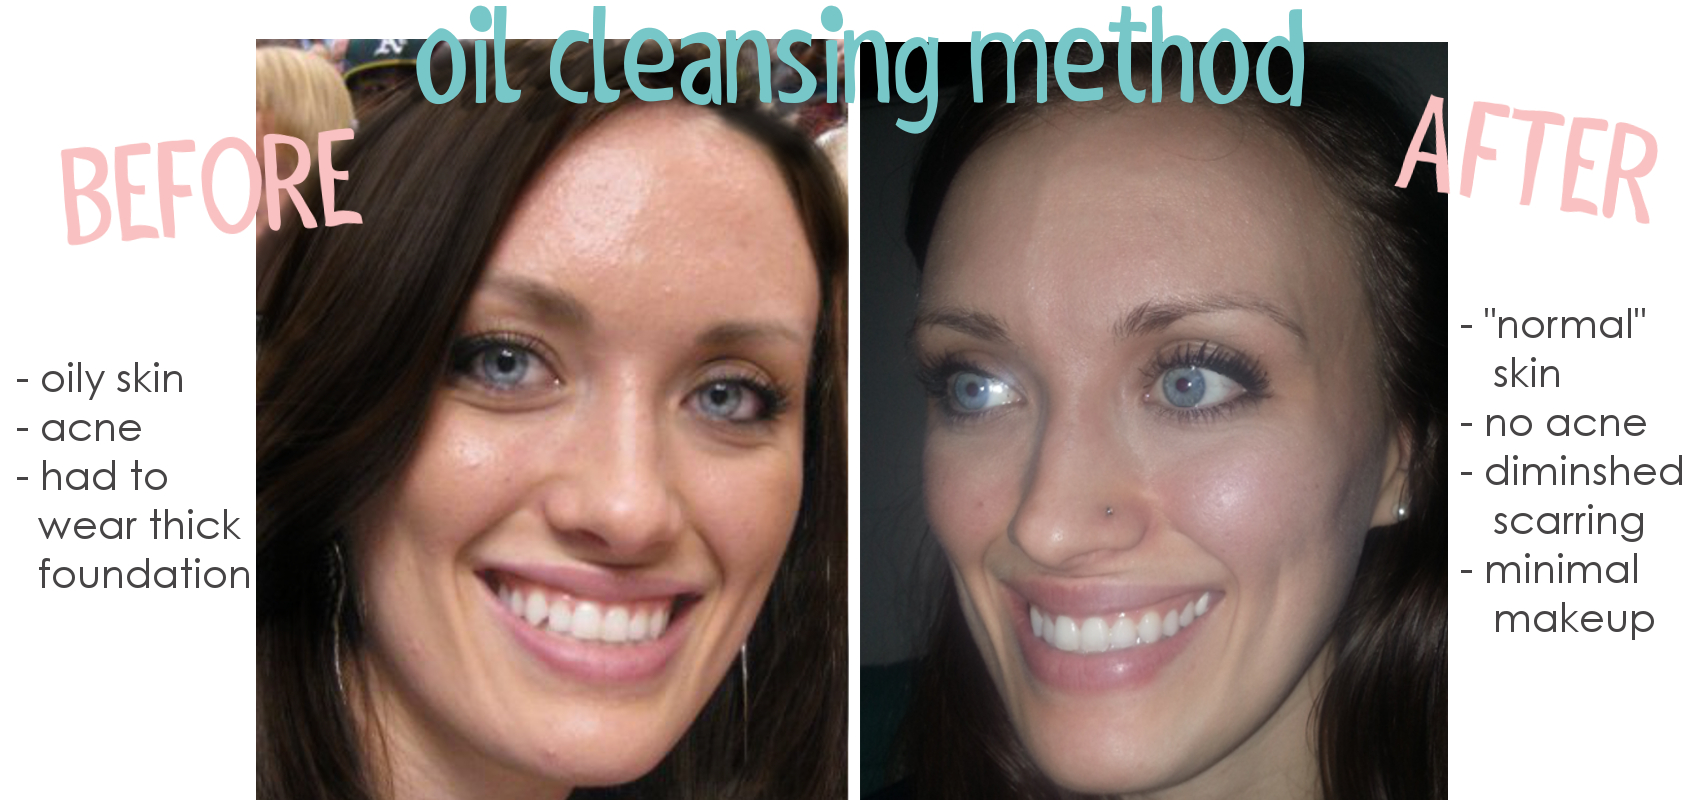 oil cleansing metoden